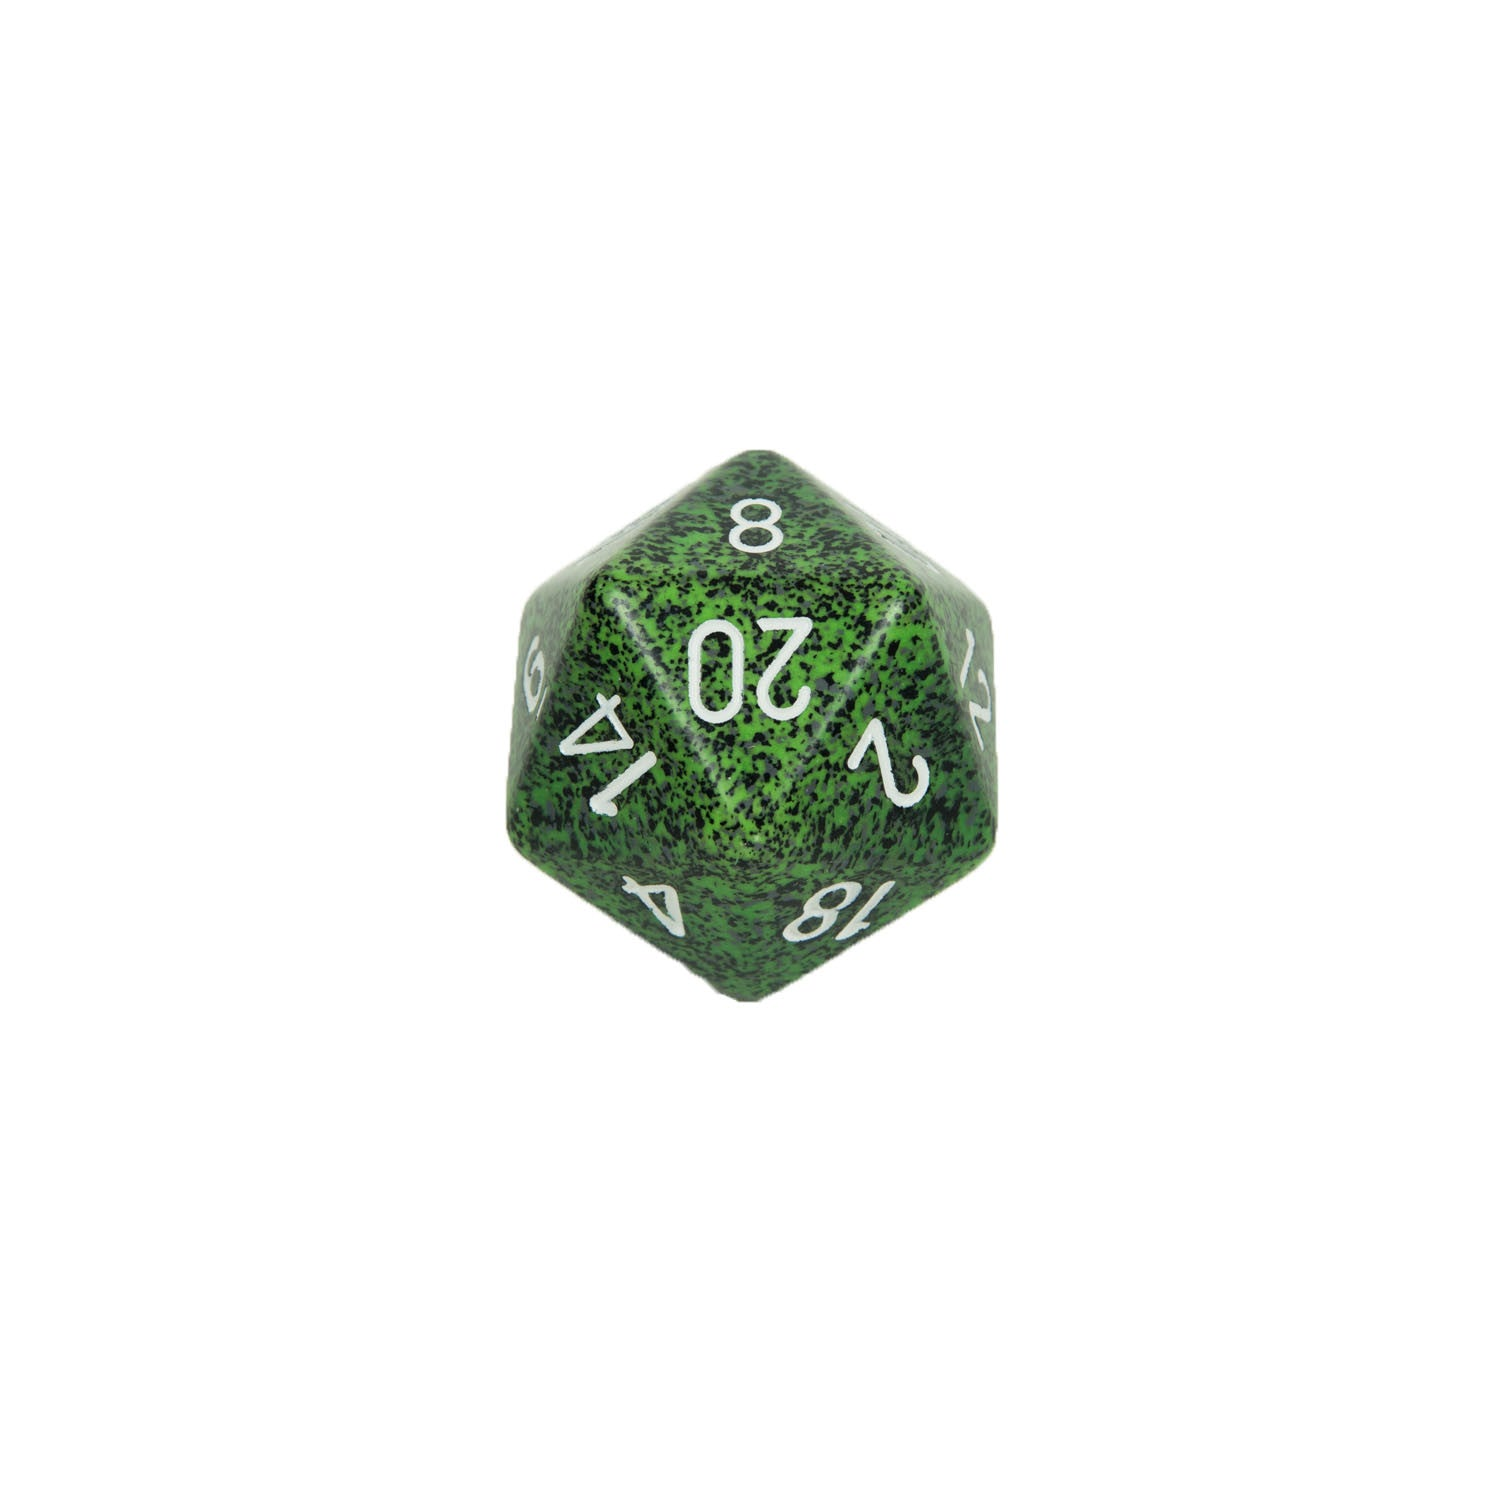 Chessex CHXXS2089 Recon™ Speckled 34mm d20 single